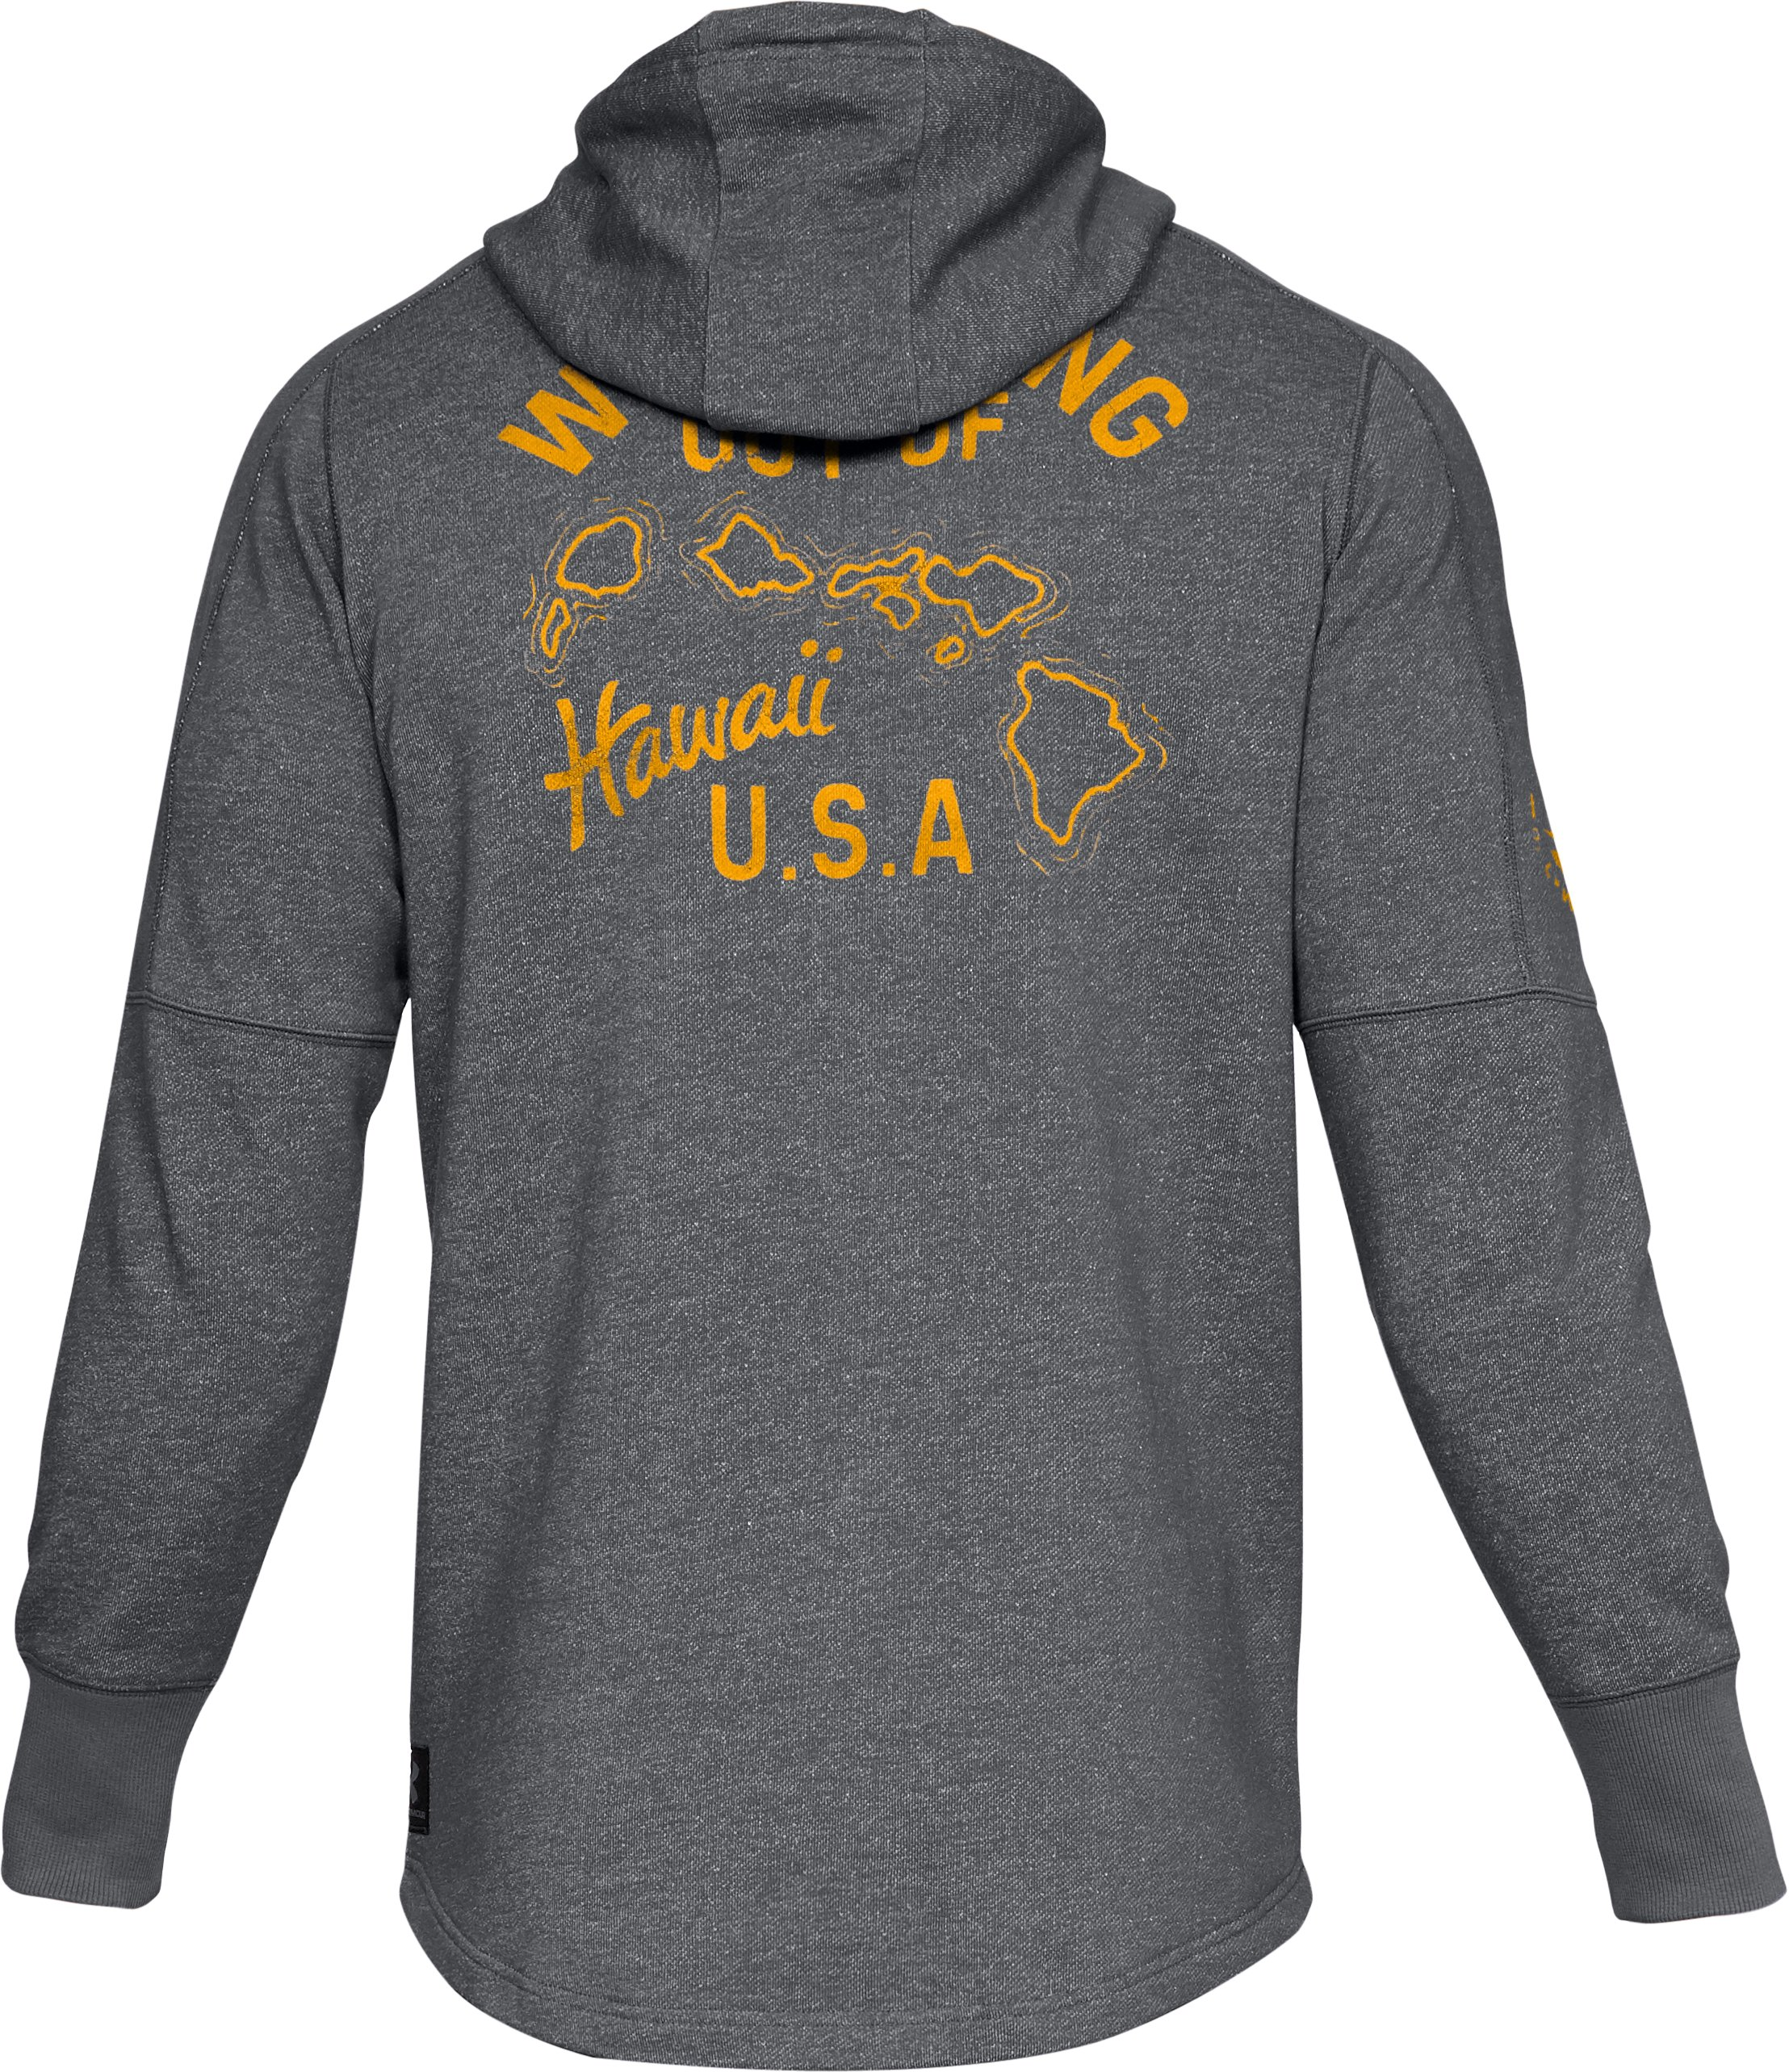 Men's UA x Project Rock Hawaii USA Hoodie, Graphite,